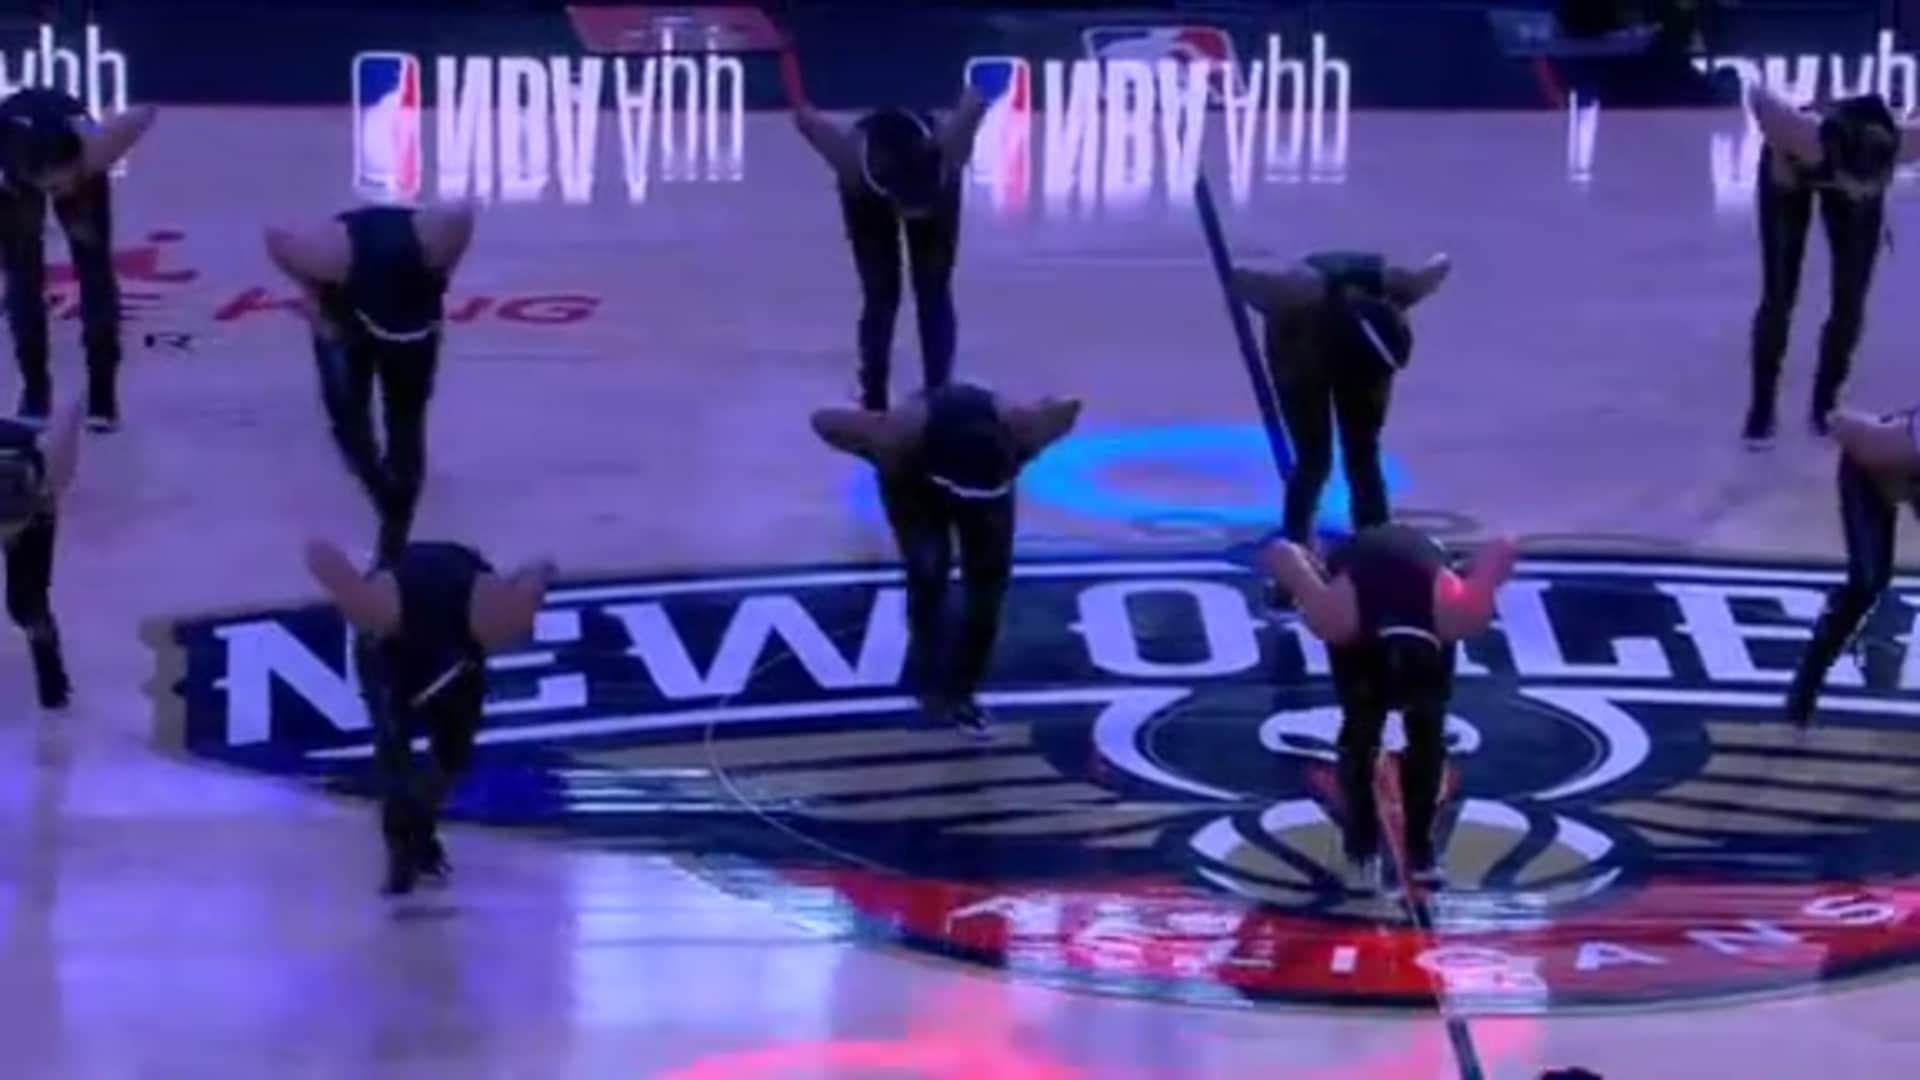 Entertainment: Pelicans Dance Team 2nd quarter performance - October 31 vs. Denver Nuggets